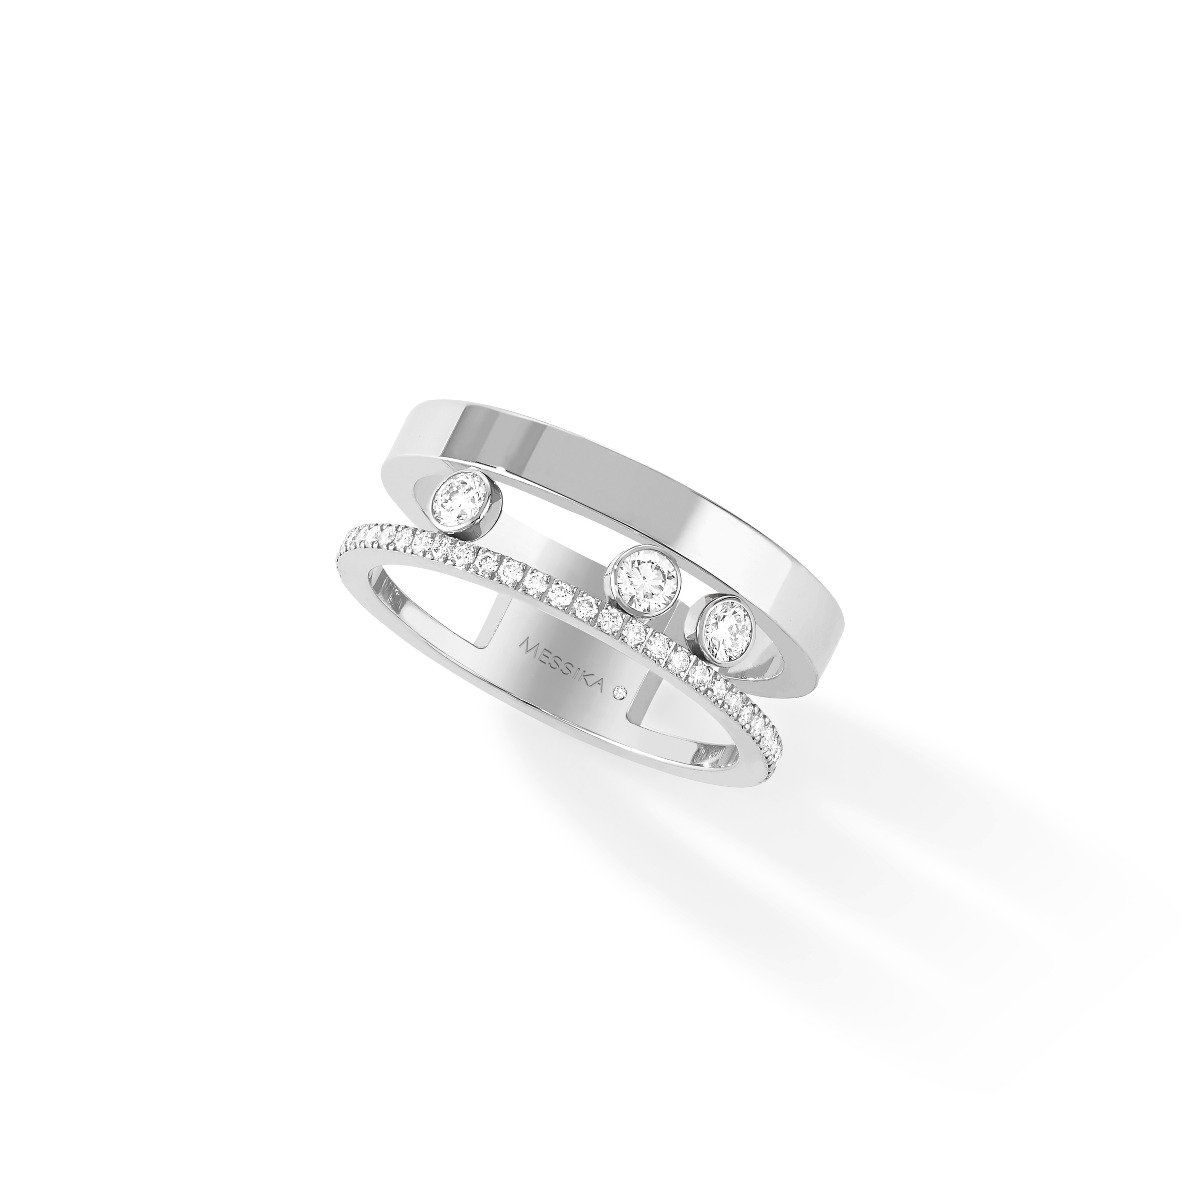 Move Romane Ring - white gold